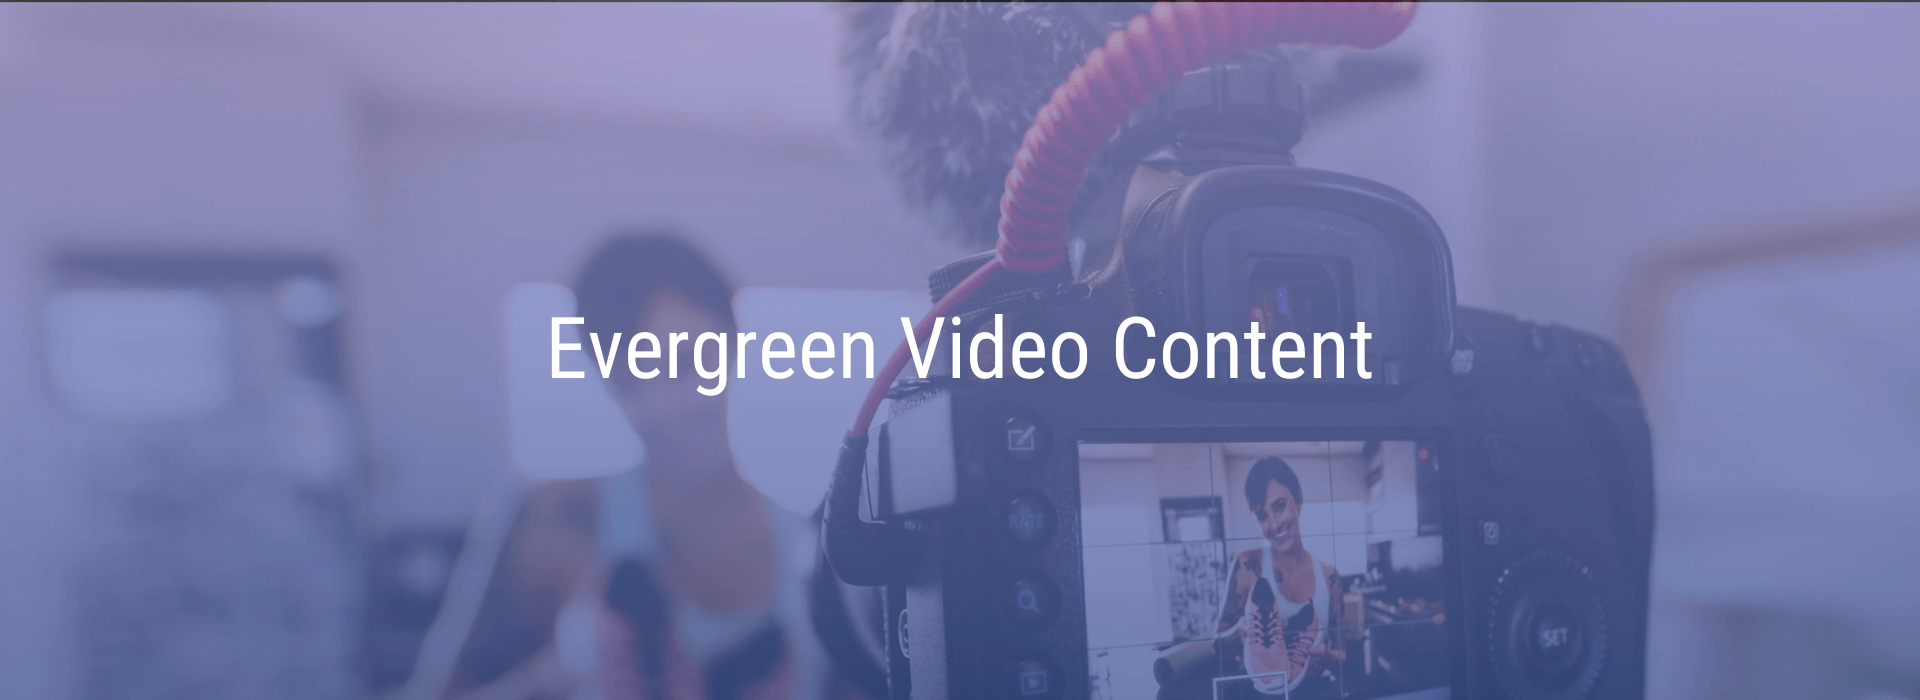 Evergreen video content Market Immersion